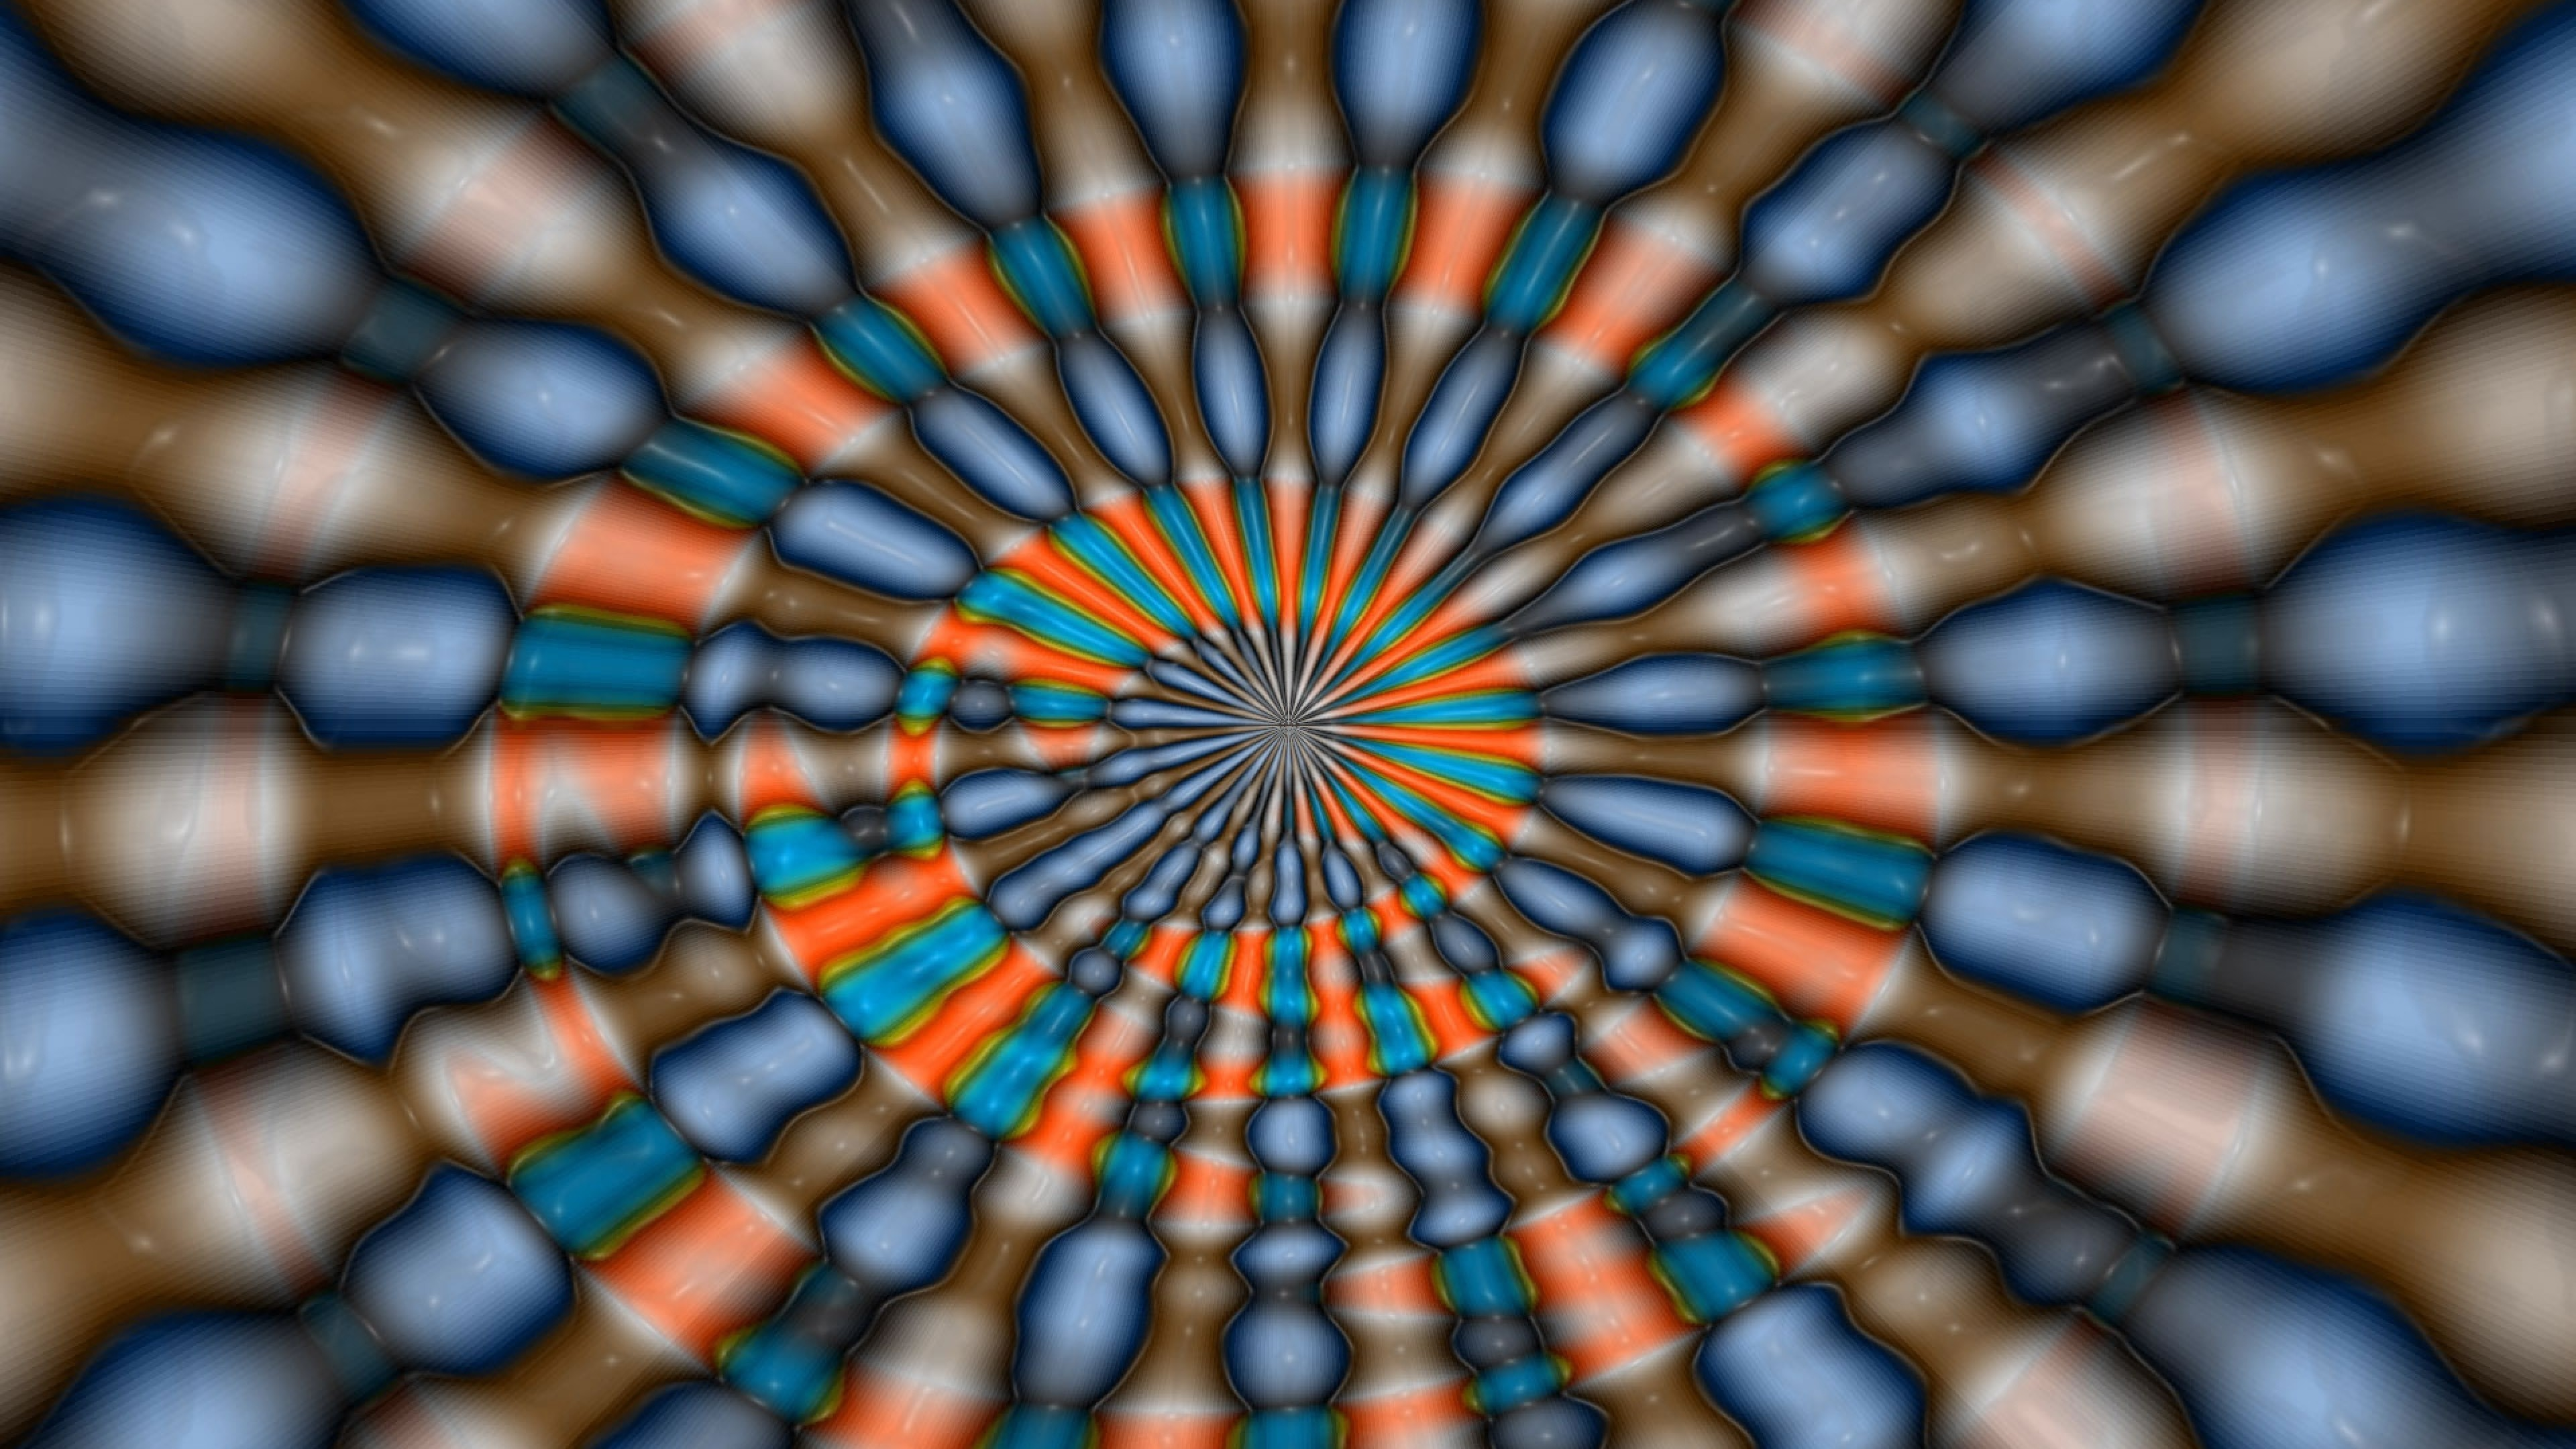 3d Optical Illusion Hd Wallpaper Abstract Colorful Desktop Wallpaper 72 Images